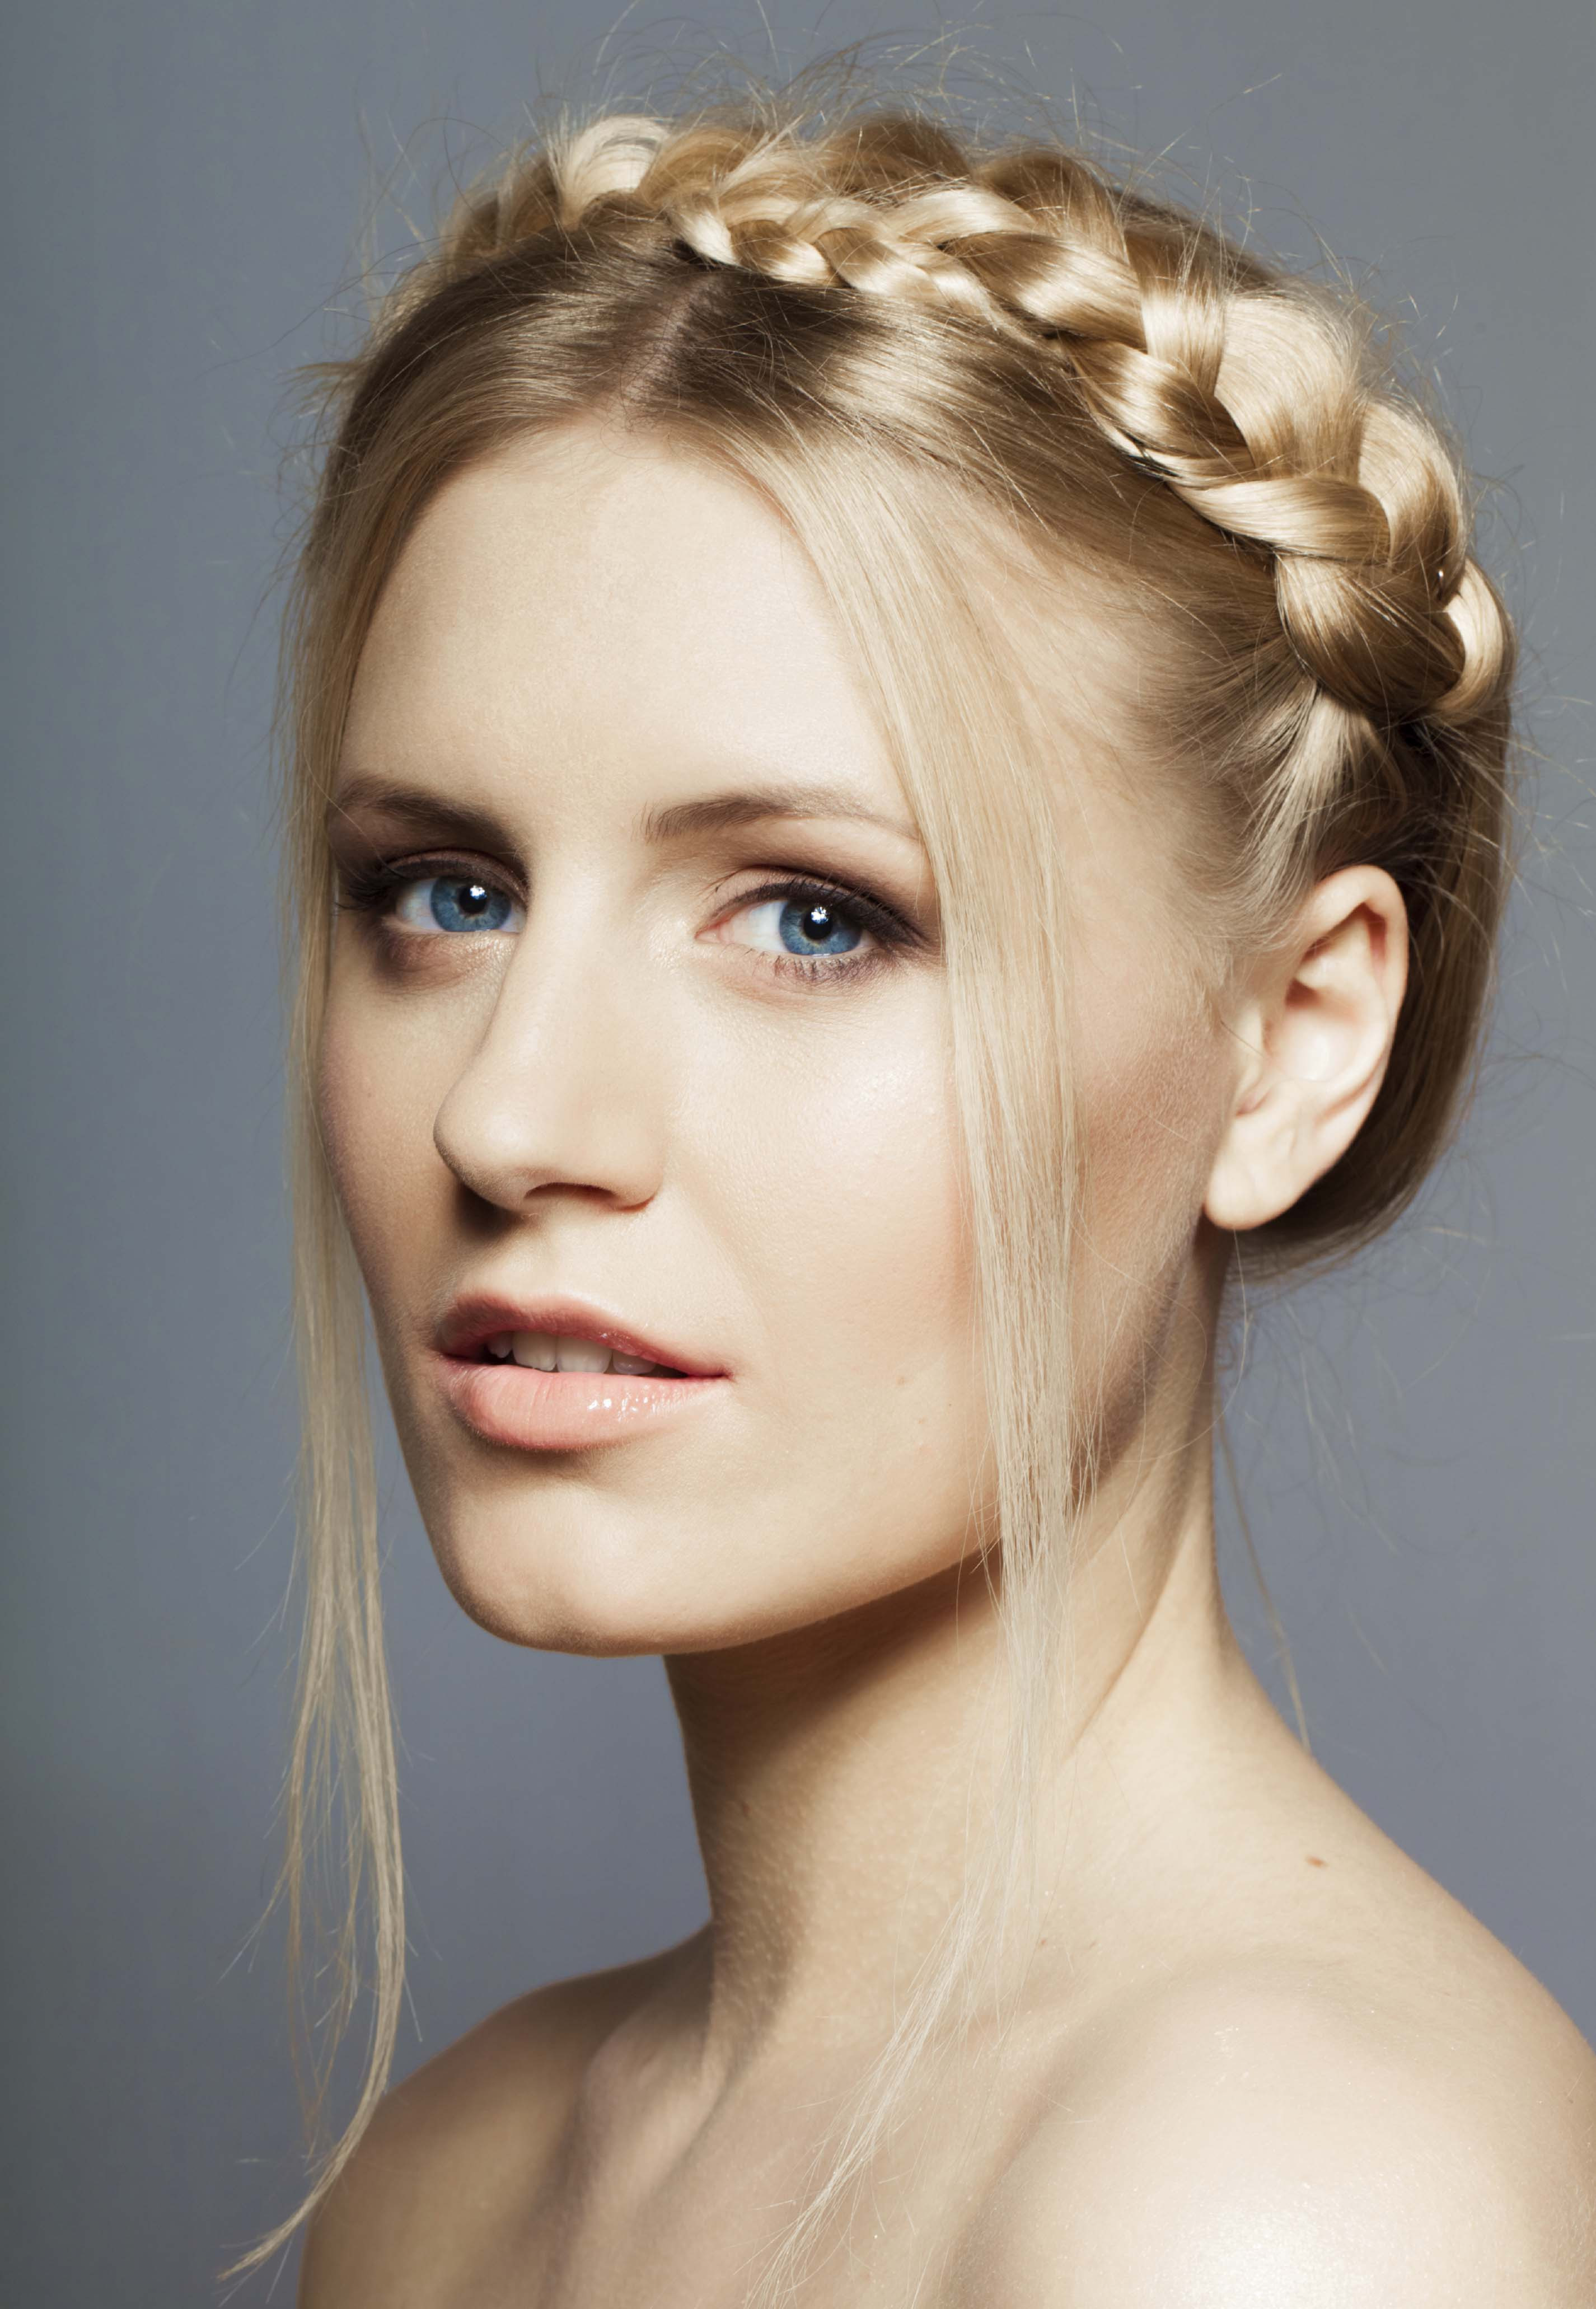 Best ideas about Prom Haircuts . Save or Pin 9 Glamorous Prom Hairstyles for Long Hair Now.